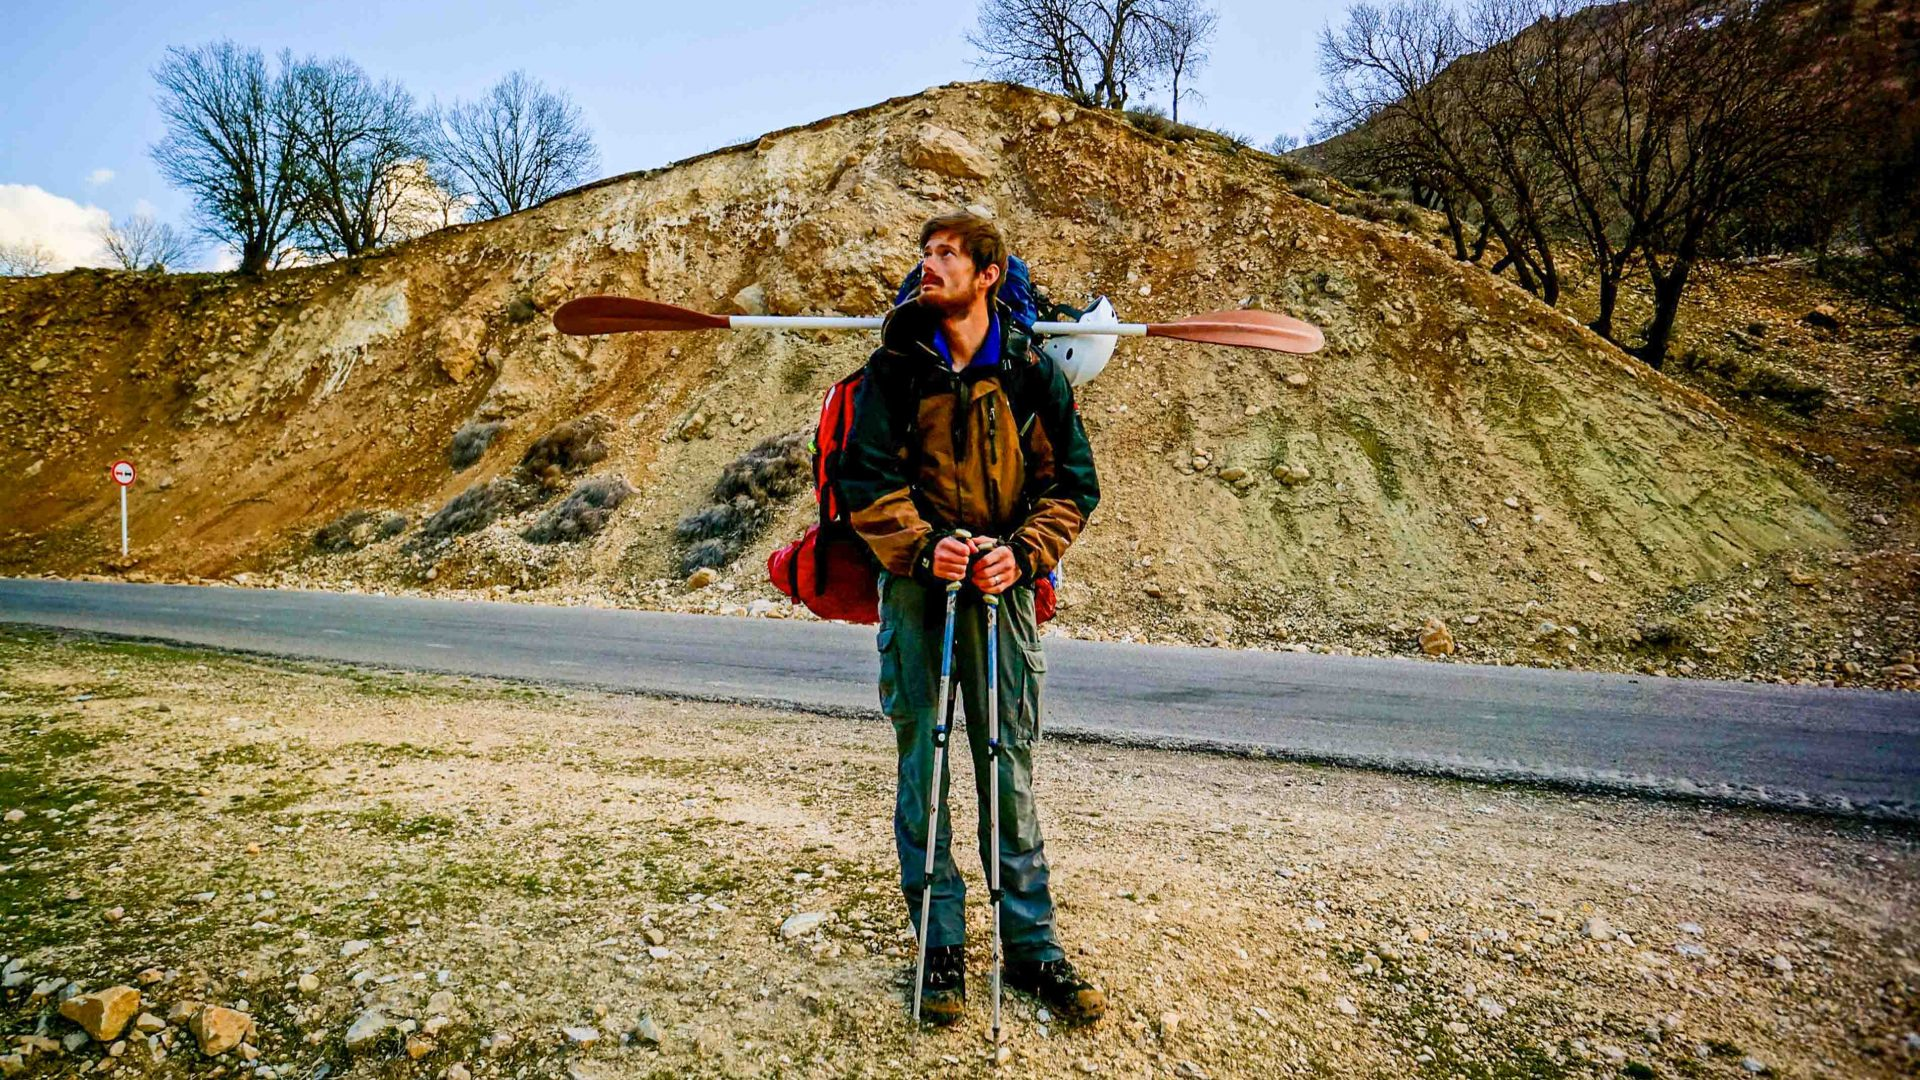 Leon McCarron hikes with one paddle in Iran, having lost an expensive collapsible carbon-fibre one.